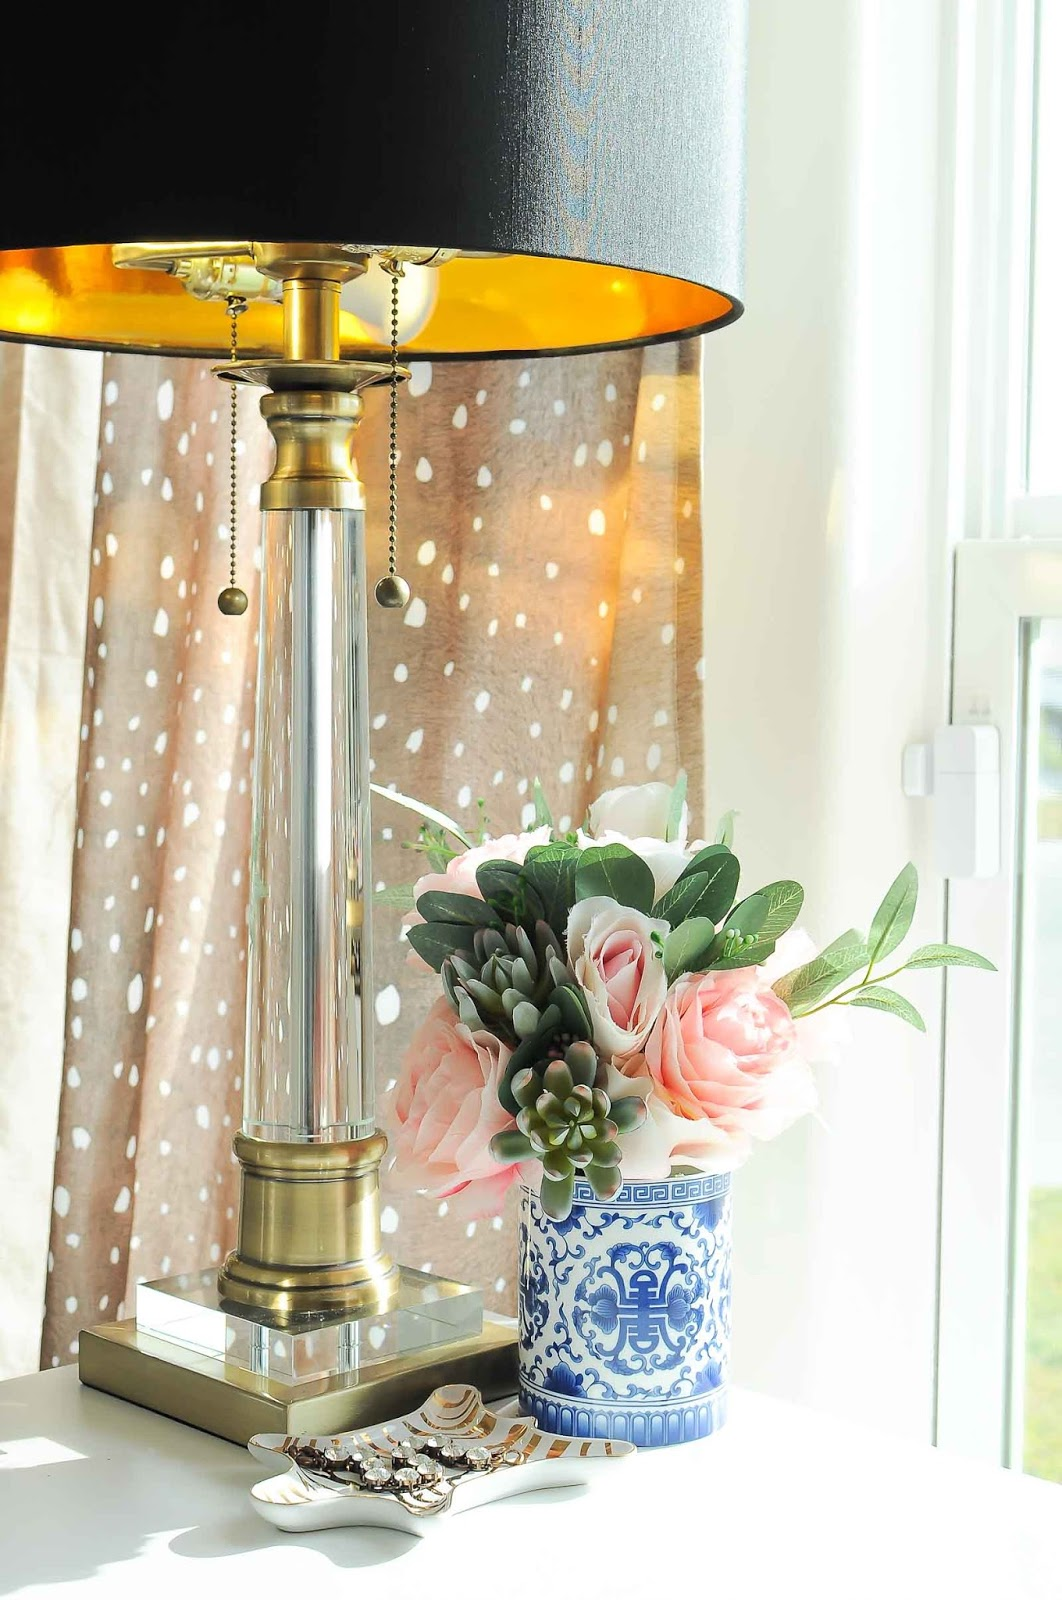 A black and crystal lamp looks gorgeous against a backdrop of fawn curtain panels and a chinoiserie floral arrangement in this chic office space.